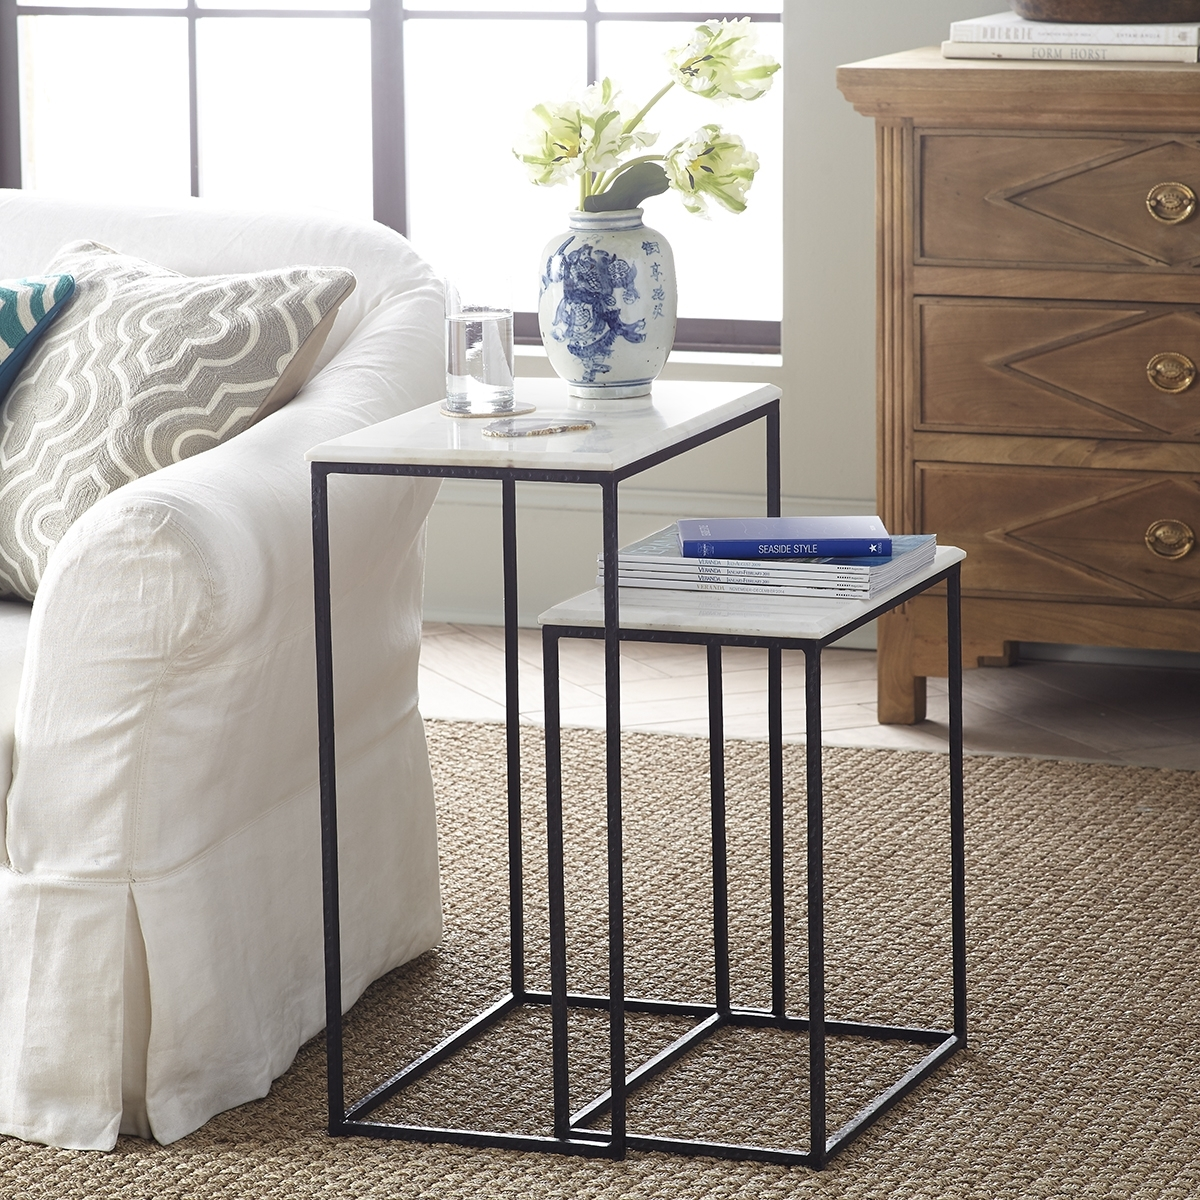 Marble Nesting Side Tables - Set Of 2 | Wisteria regarding Set of Nesting Coffee Tables (Image 18 of 30)